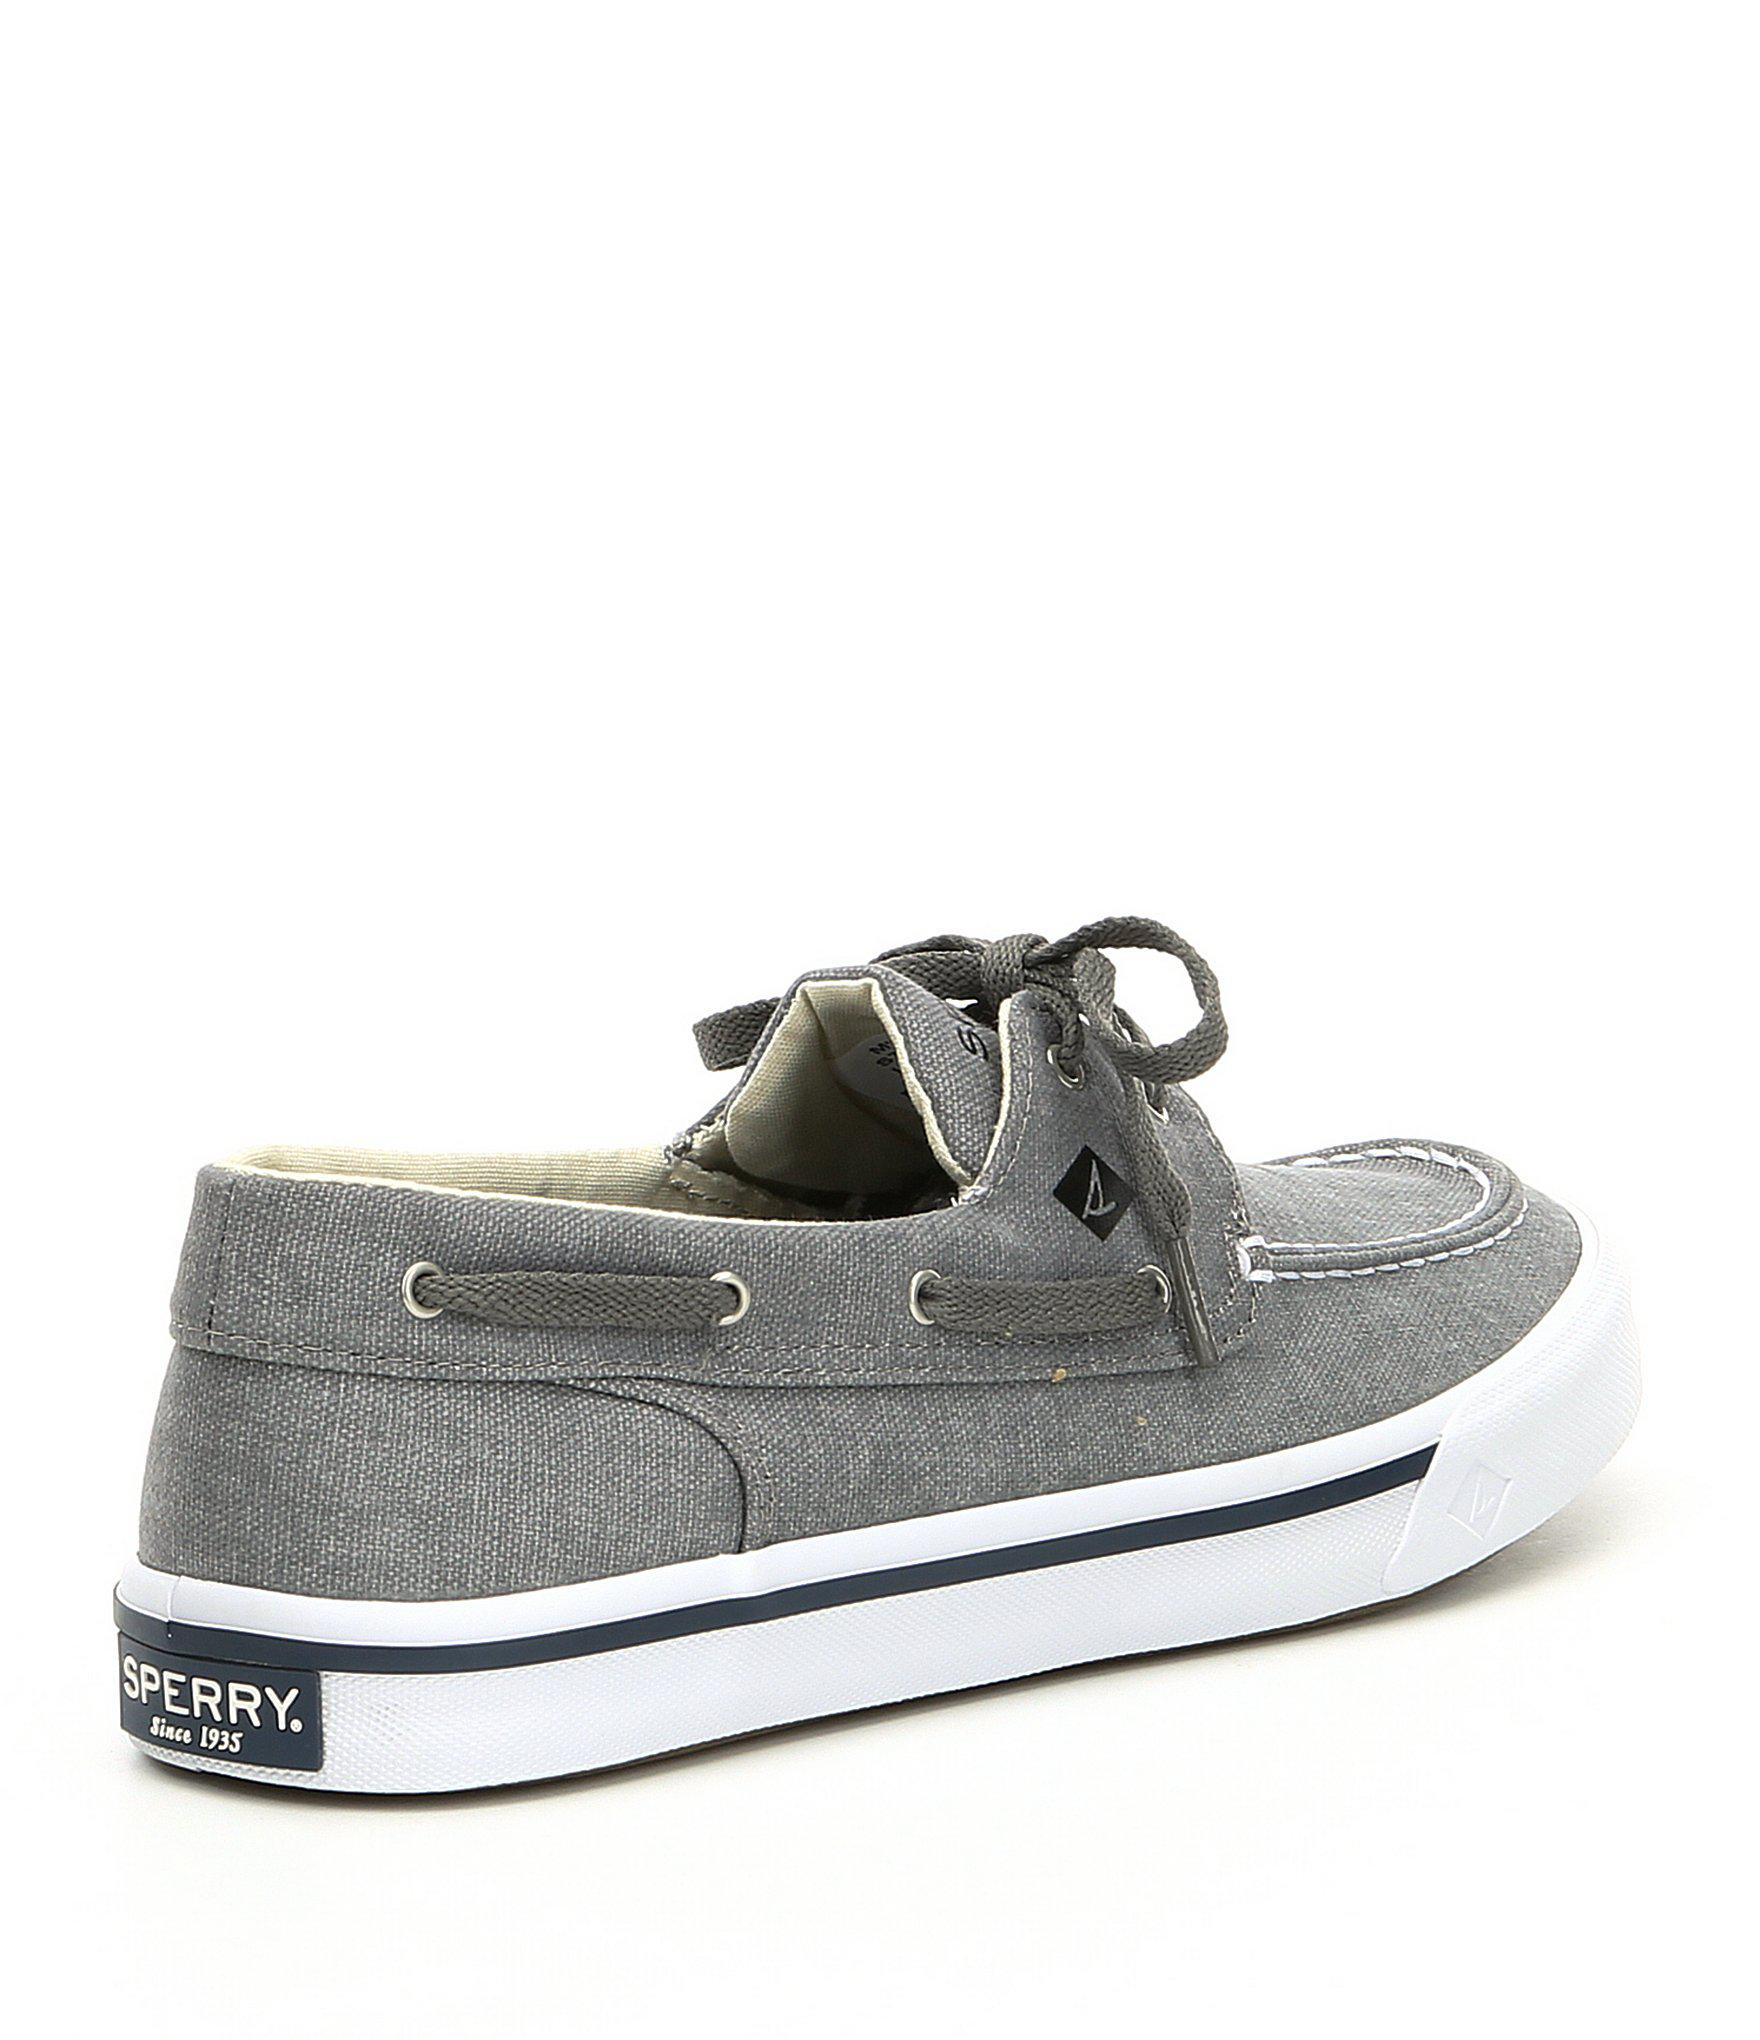 afcafdca359 Lyst - Sperry Top-Sider Men s Bahama Ii Boat Shoes in Gray for Men